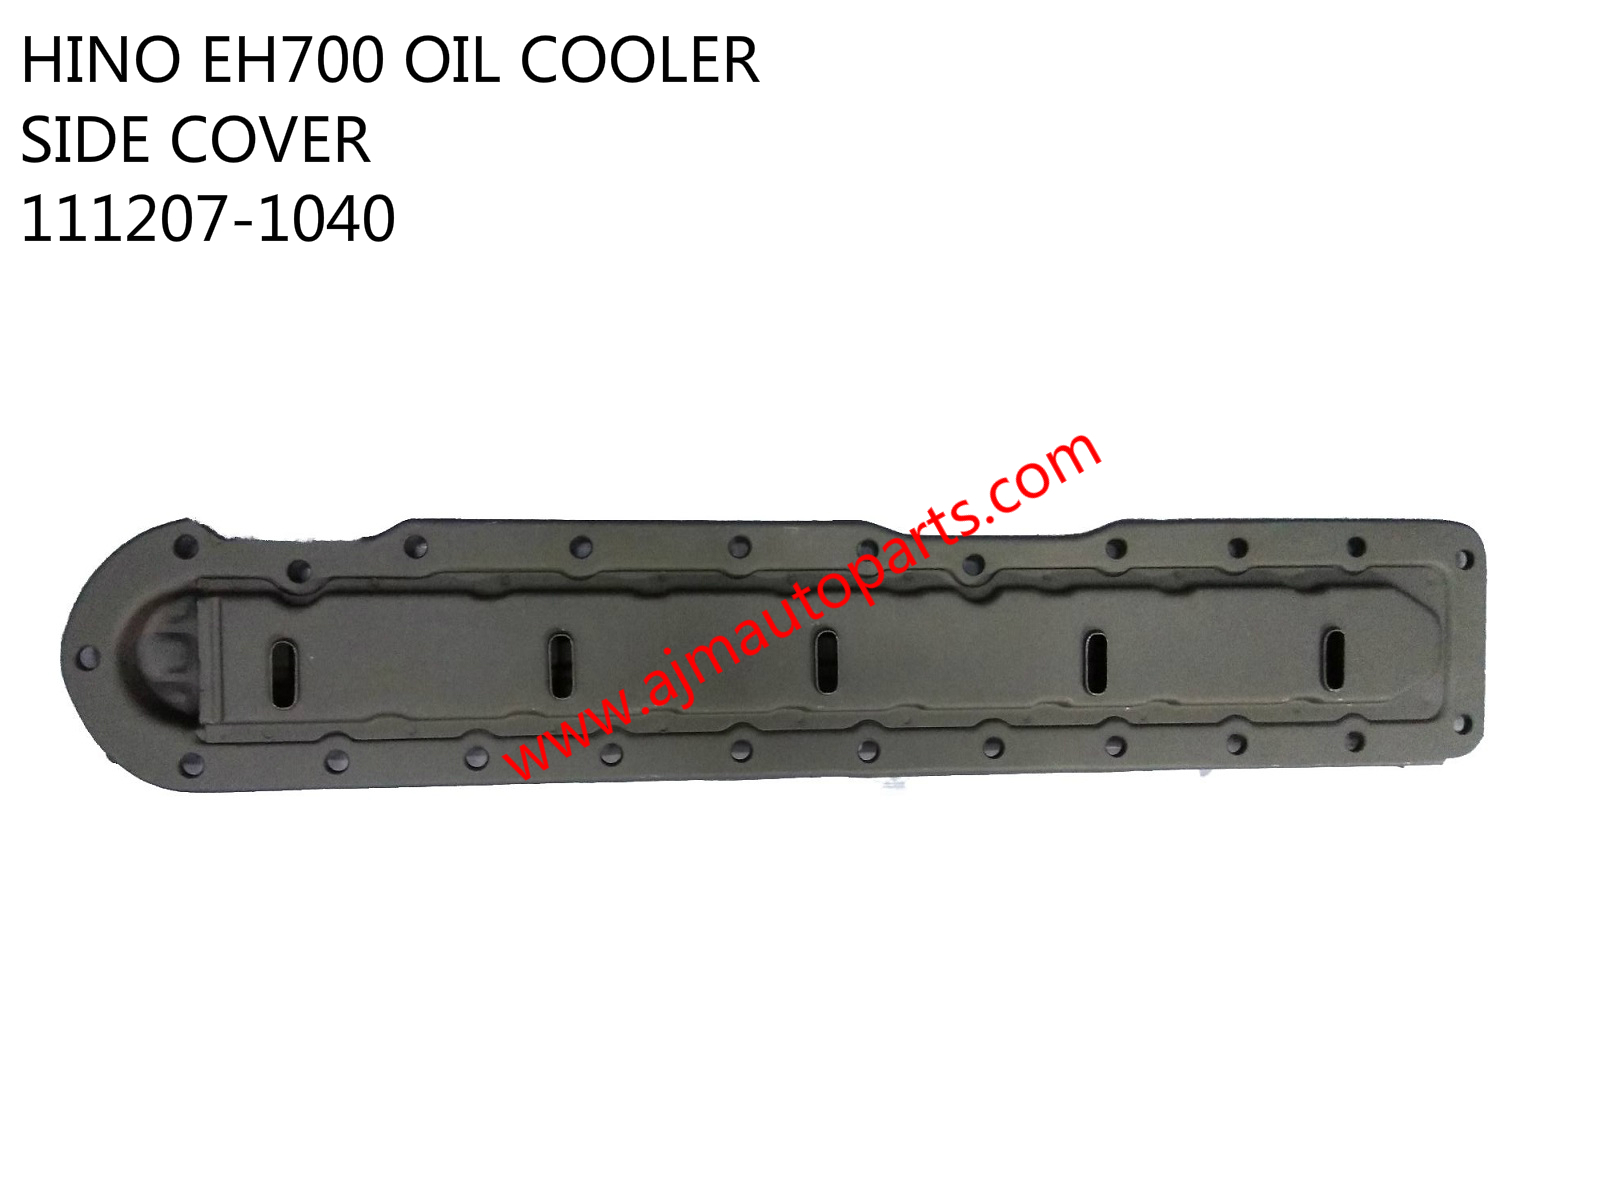 HINO-EH700-SIDE-COVER-11207-1040